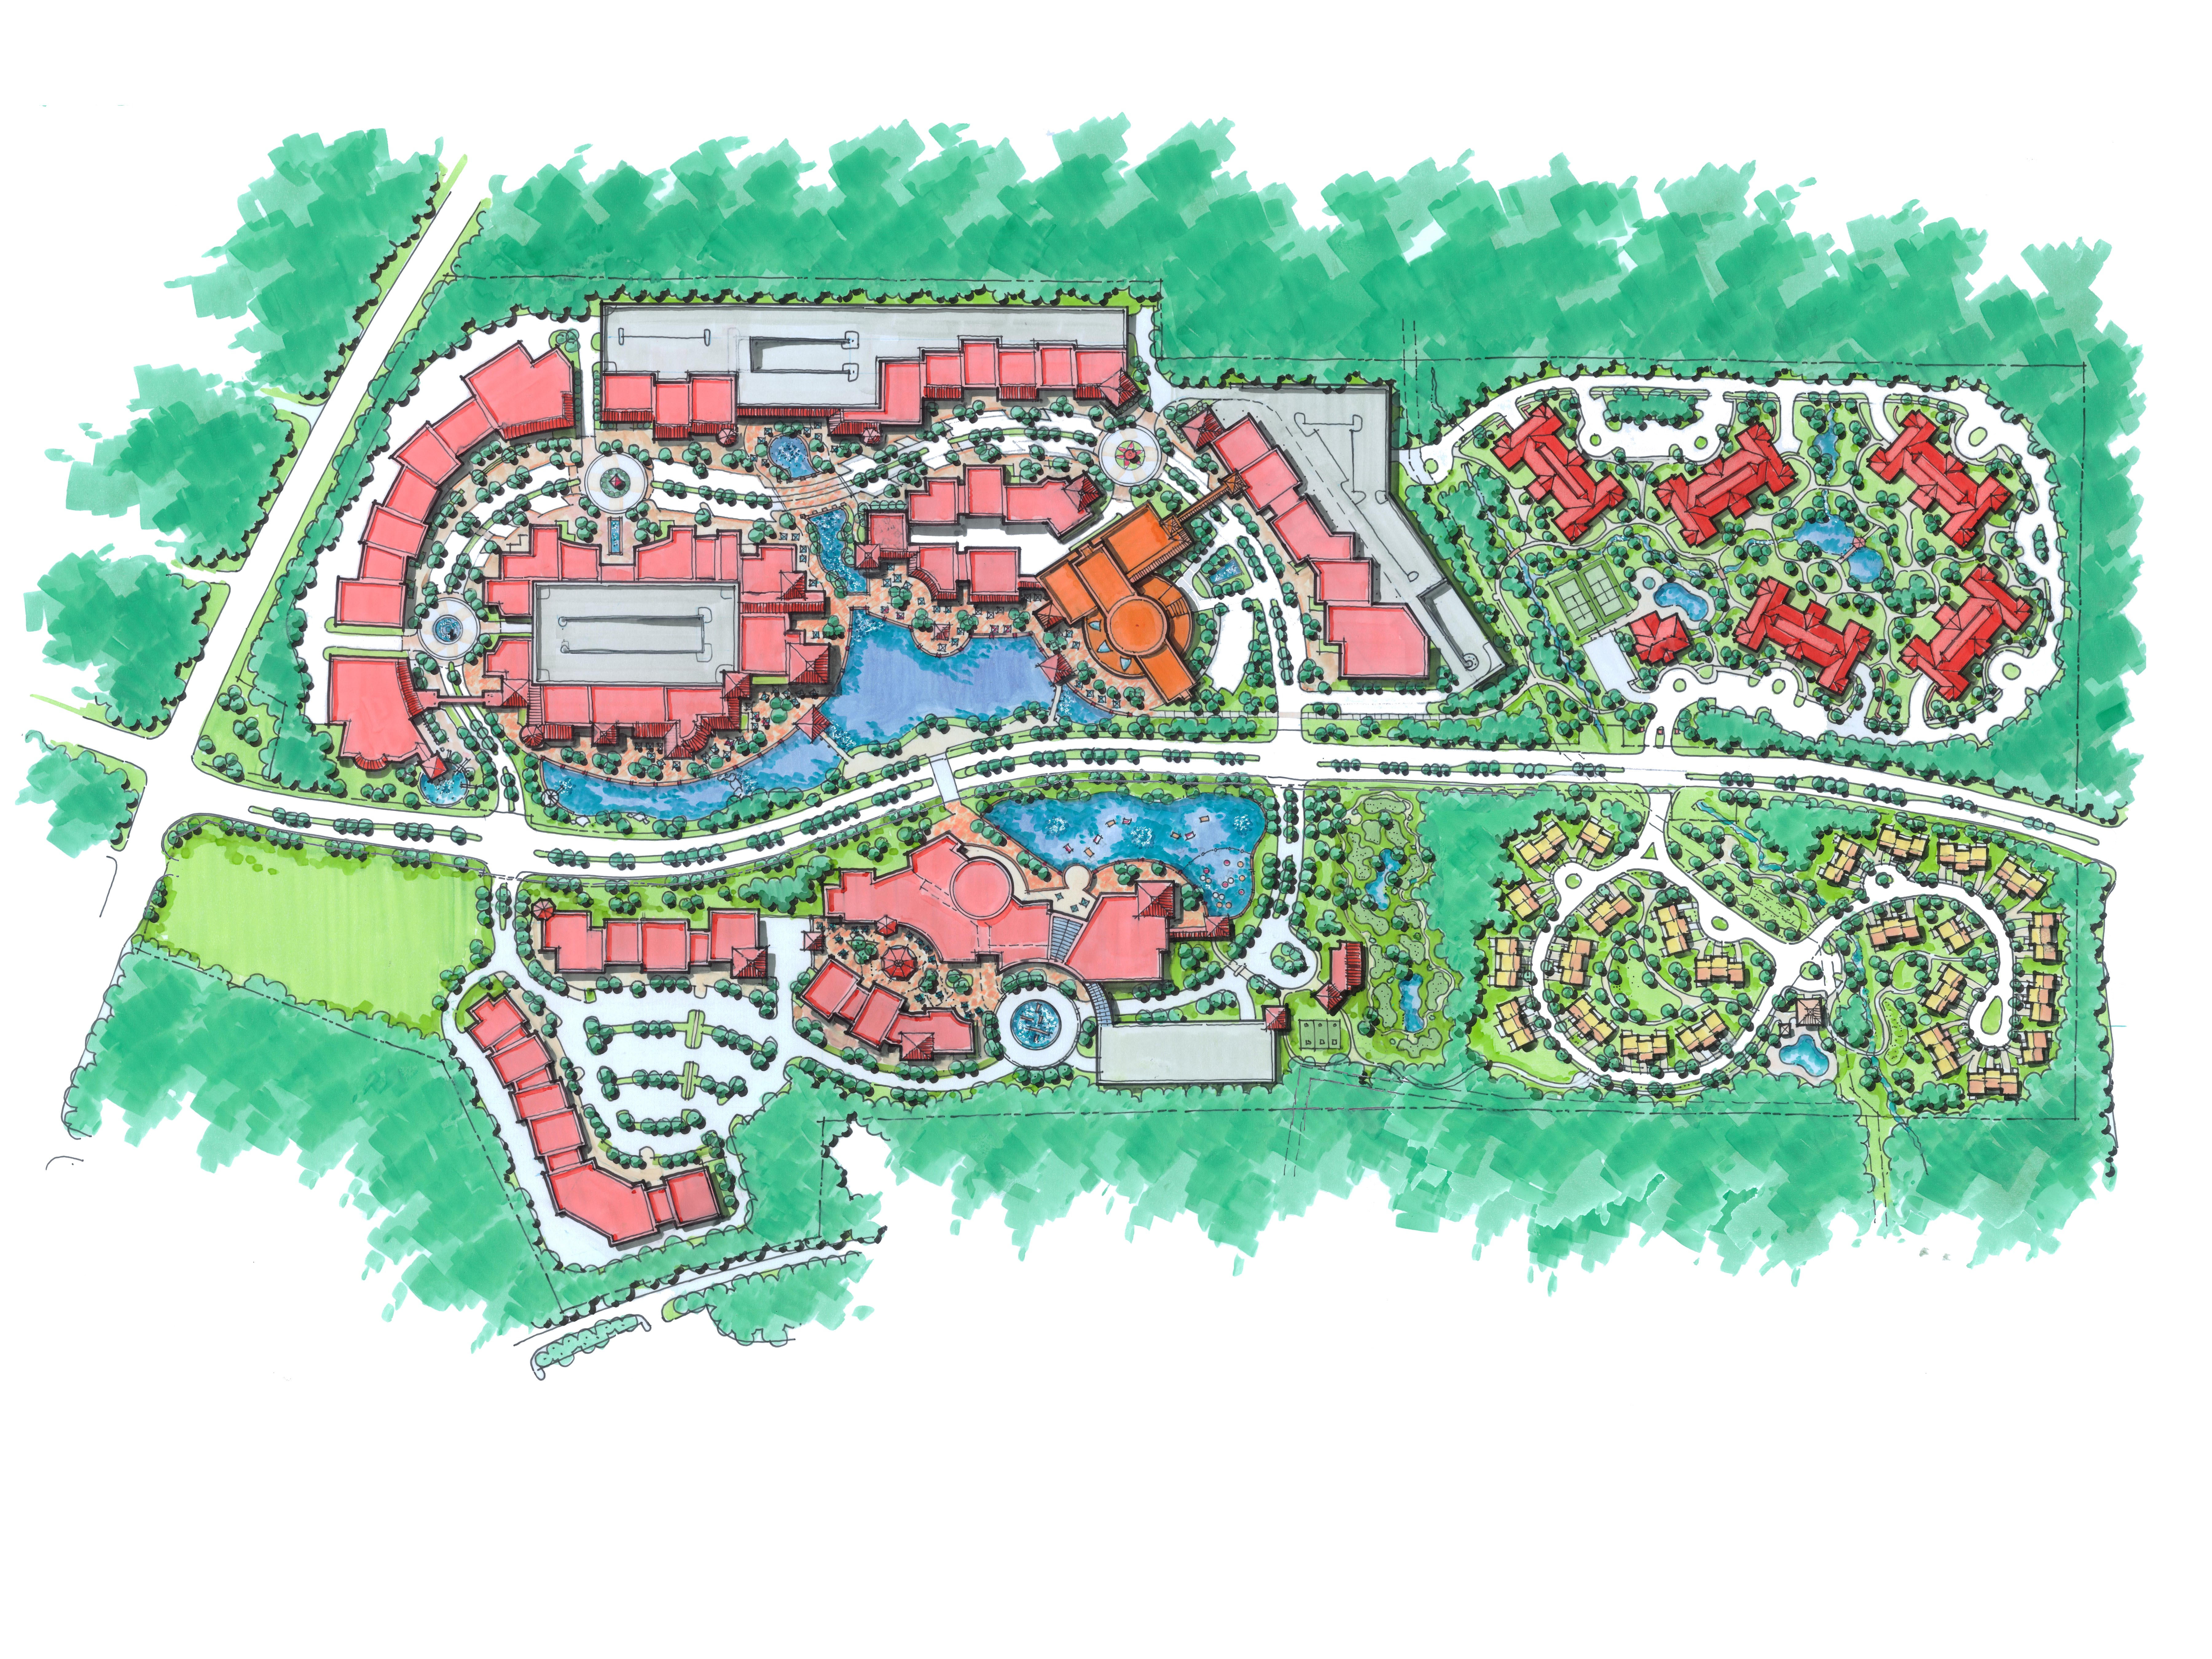 Senior Living, Landscape Architect, THW, THW Atlanta, Top Land Planning, Best Landscape Architects, Mixed Use Development Planning, Master Planning